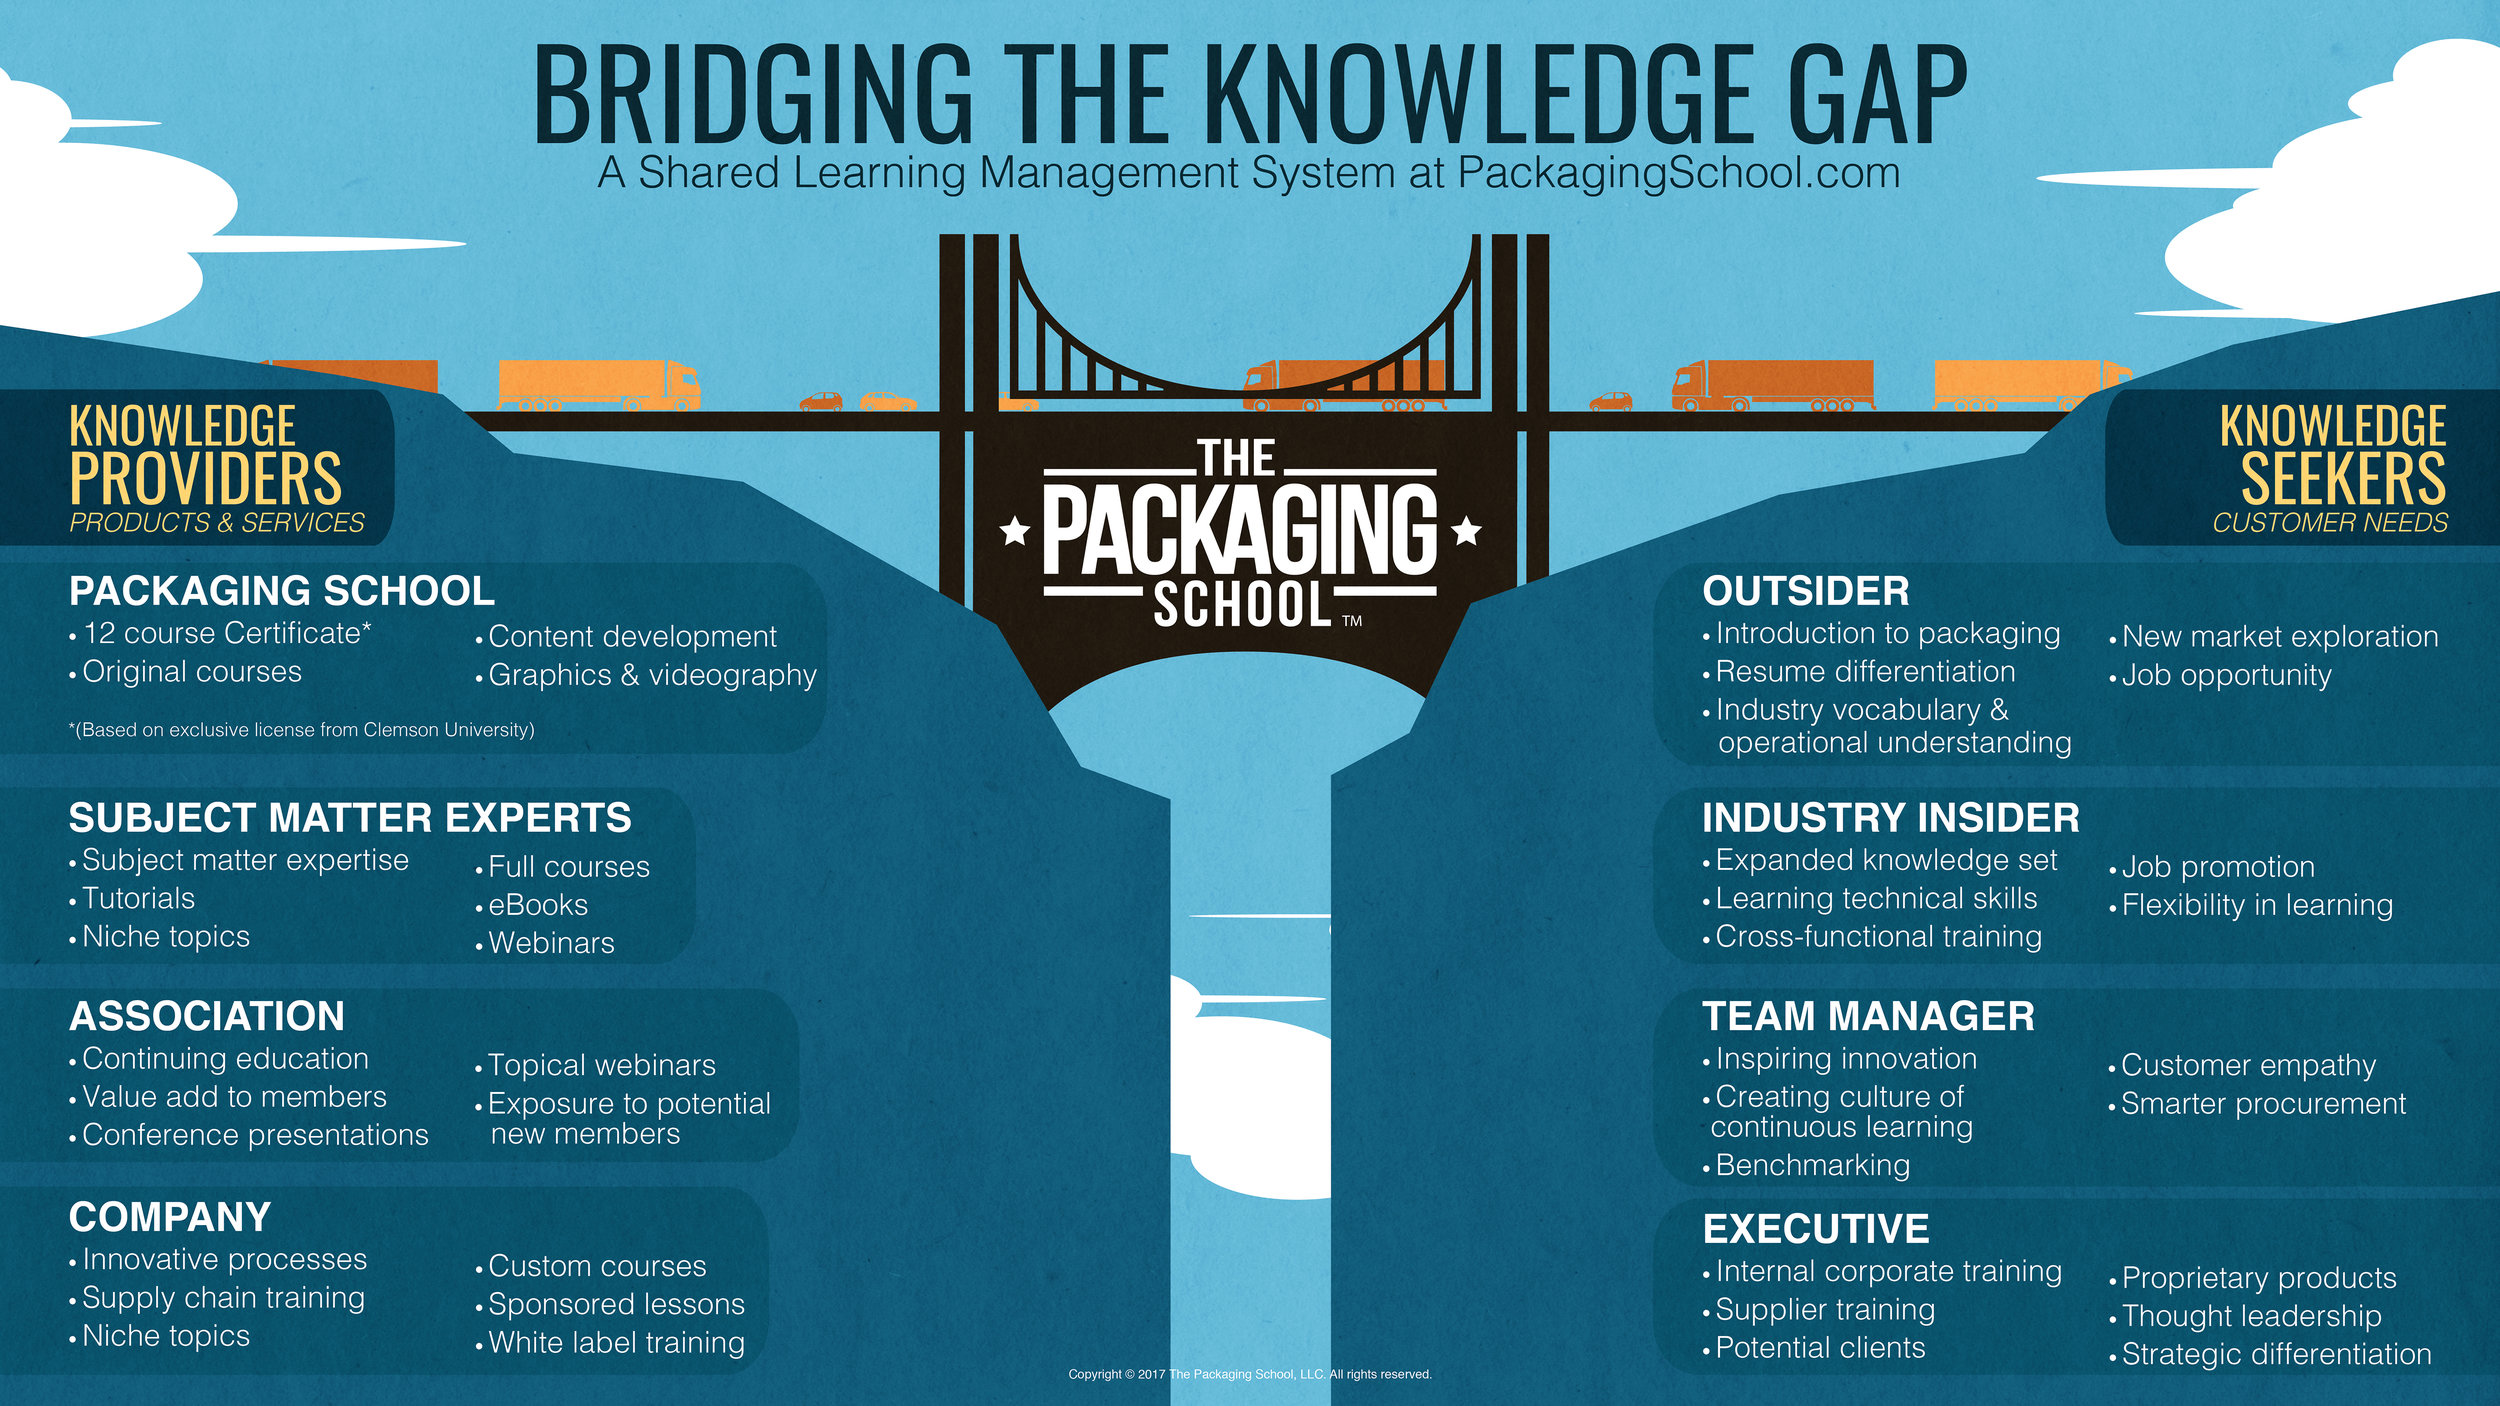 packaging-school-connecting-knowledge-providers-with-knowledge-seekers